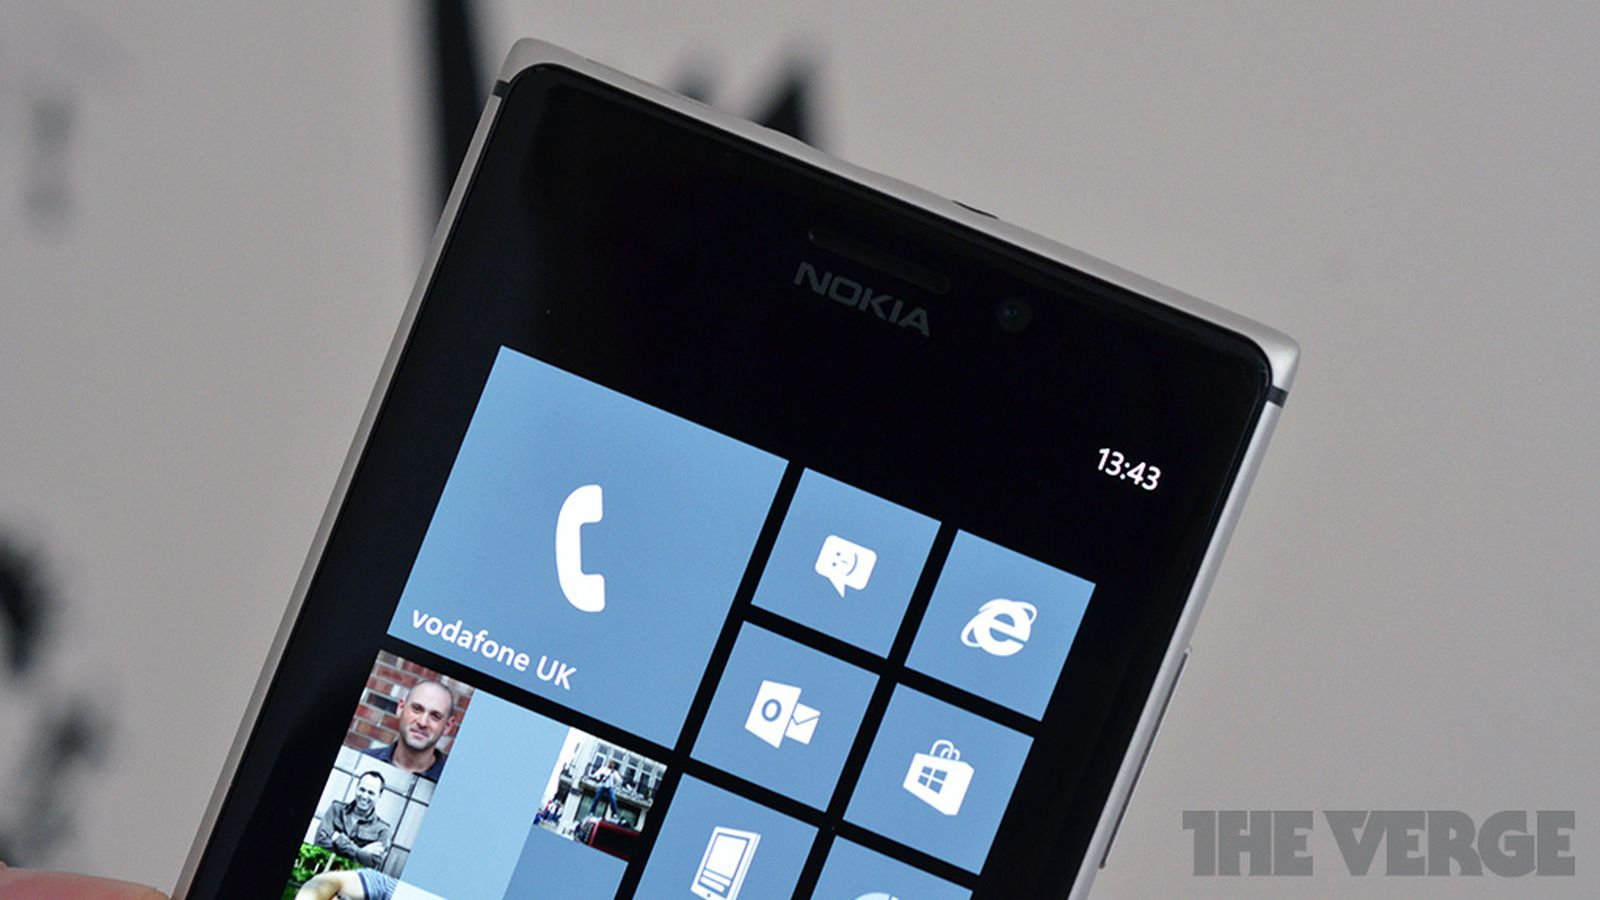 Nokia Lumia 925 reportedly heading to AT&T in September ...